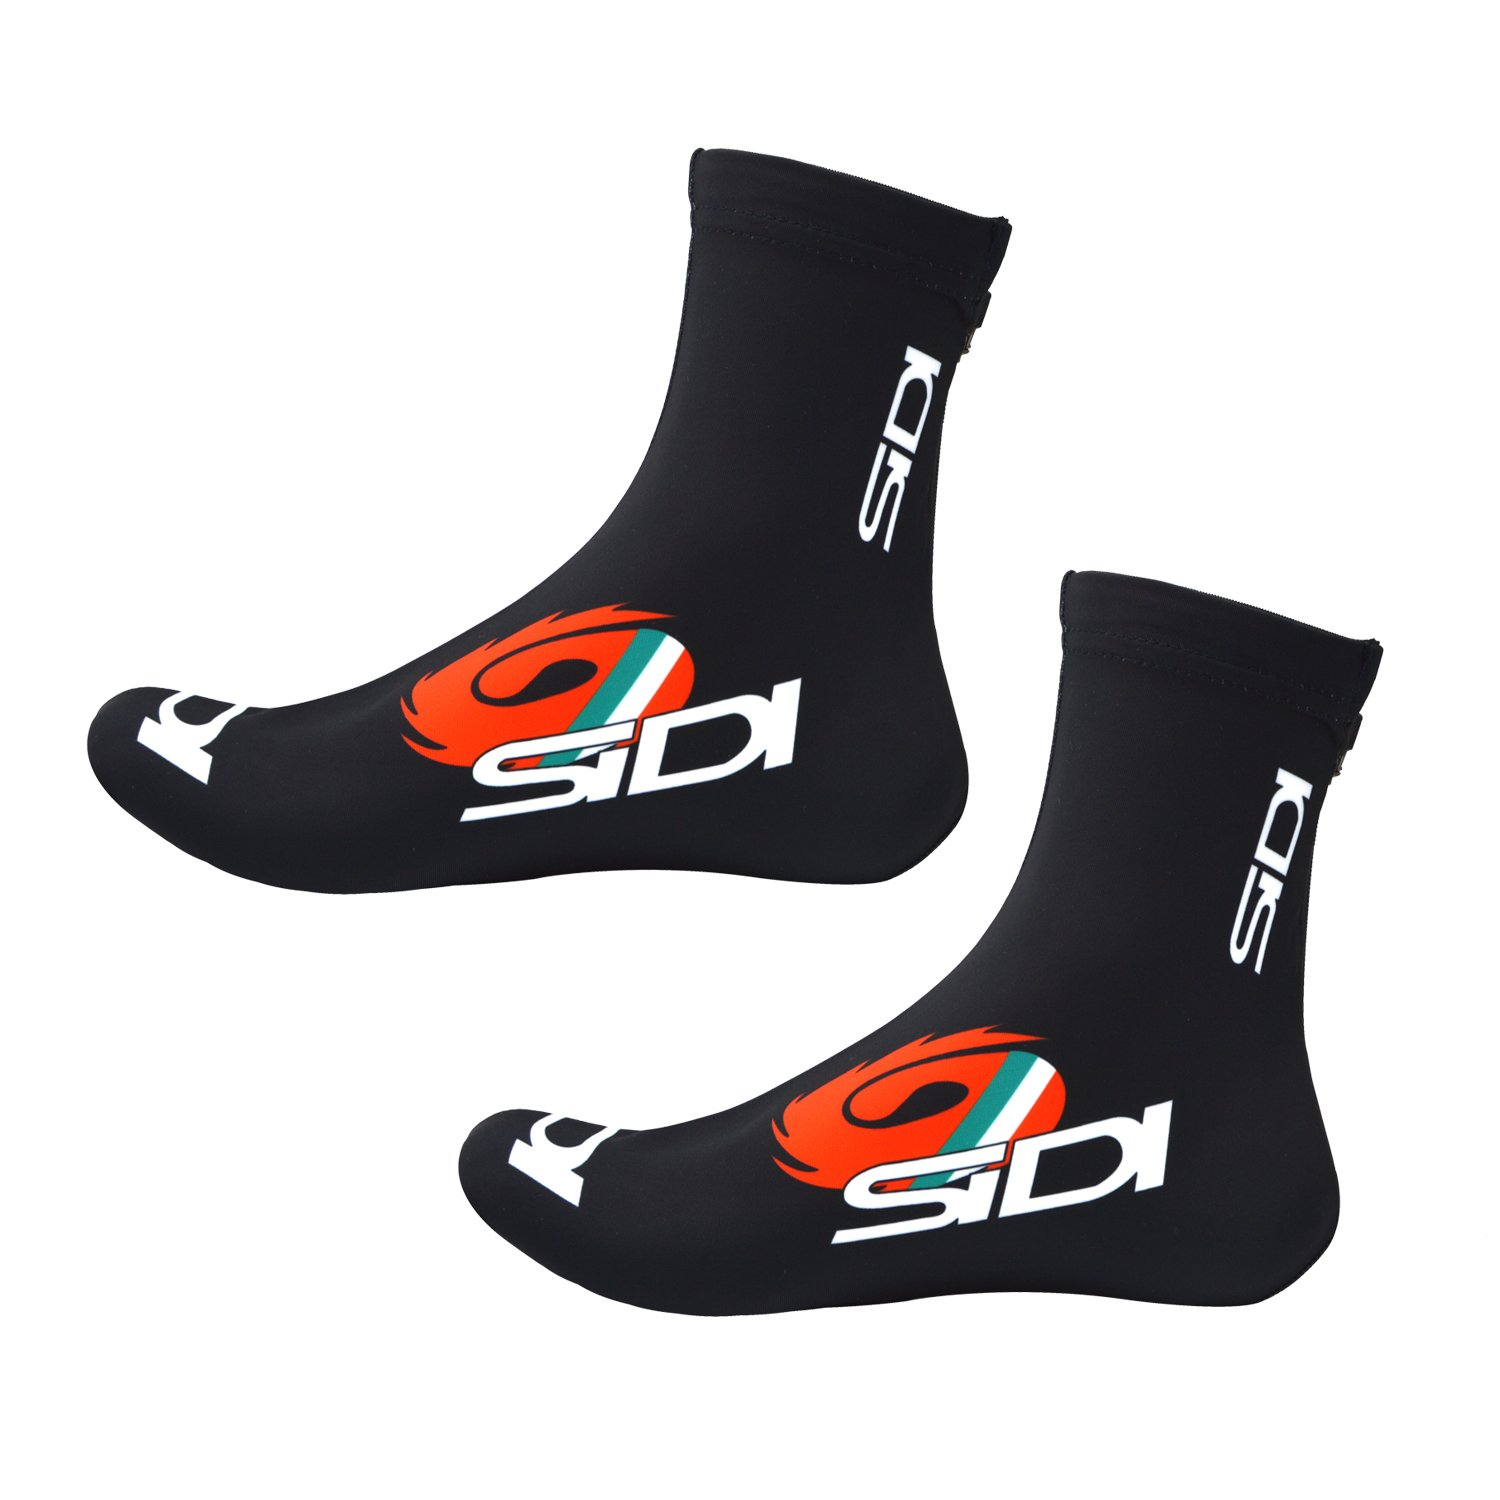 Bike Bicycle Shoe Covers-Cycling Shoe Covers Road Bike Shoes Toe Cover Zippered MTB Winter Cycling Shoes Covers Outdoor Sports Windproof Warmer Overshoes Booties Covers for Men Women Multi Outools